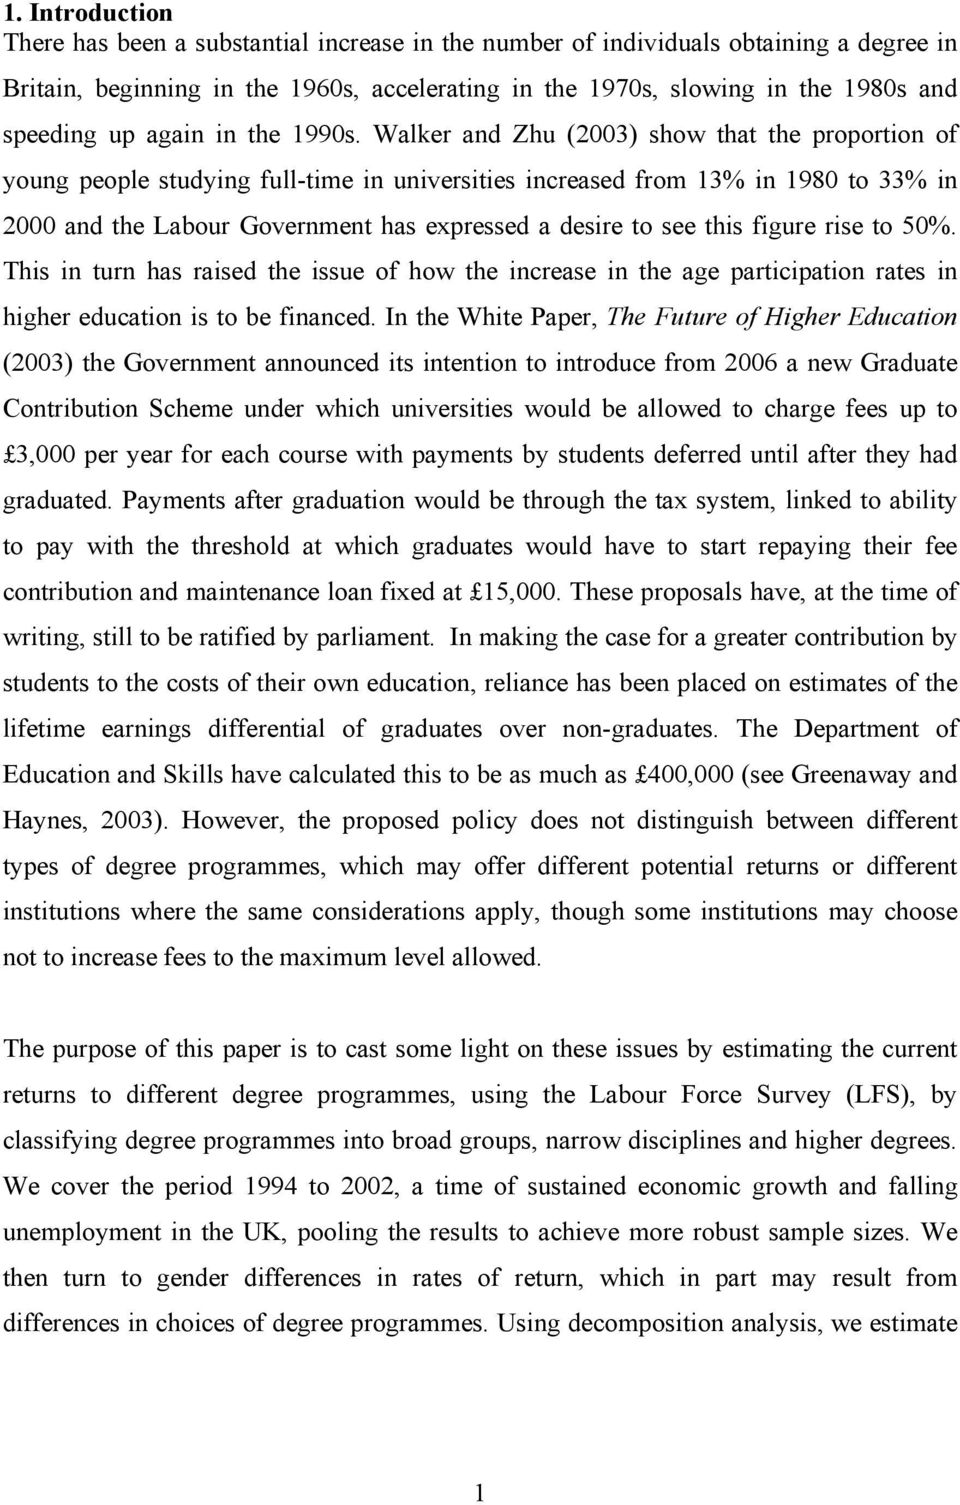 Walker and Zhu (2003) show that the proportion of young people studying full-time in universities increased from 13% in 1980 to 33% in 2000 and the Labour Government has expressed a desire to see